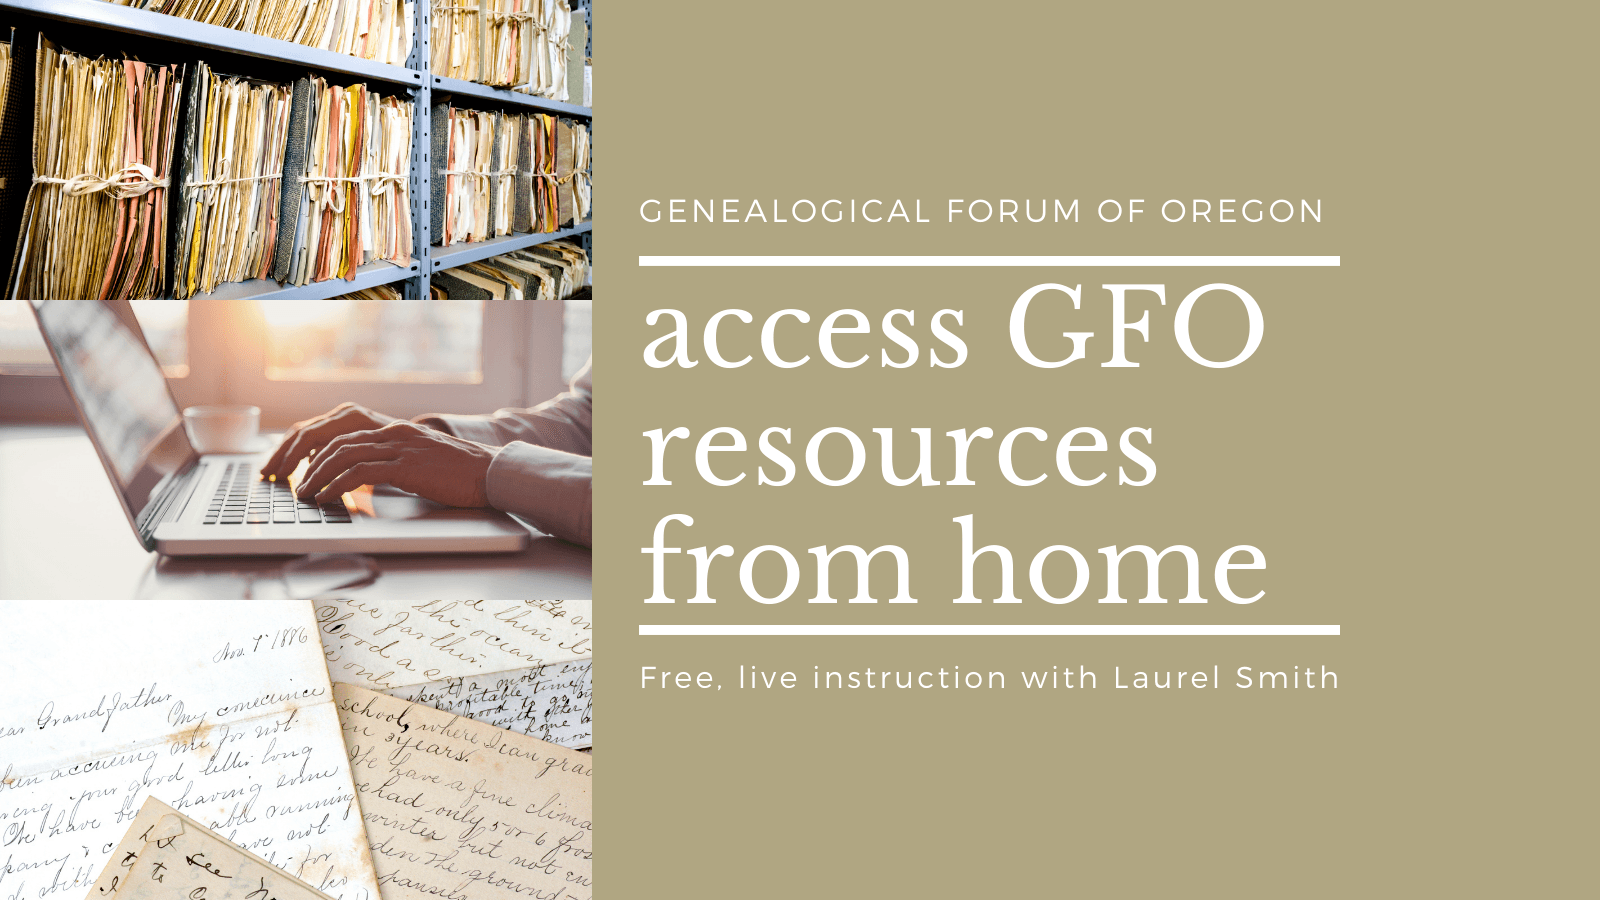 Access GFO Member Resources from Home